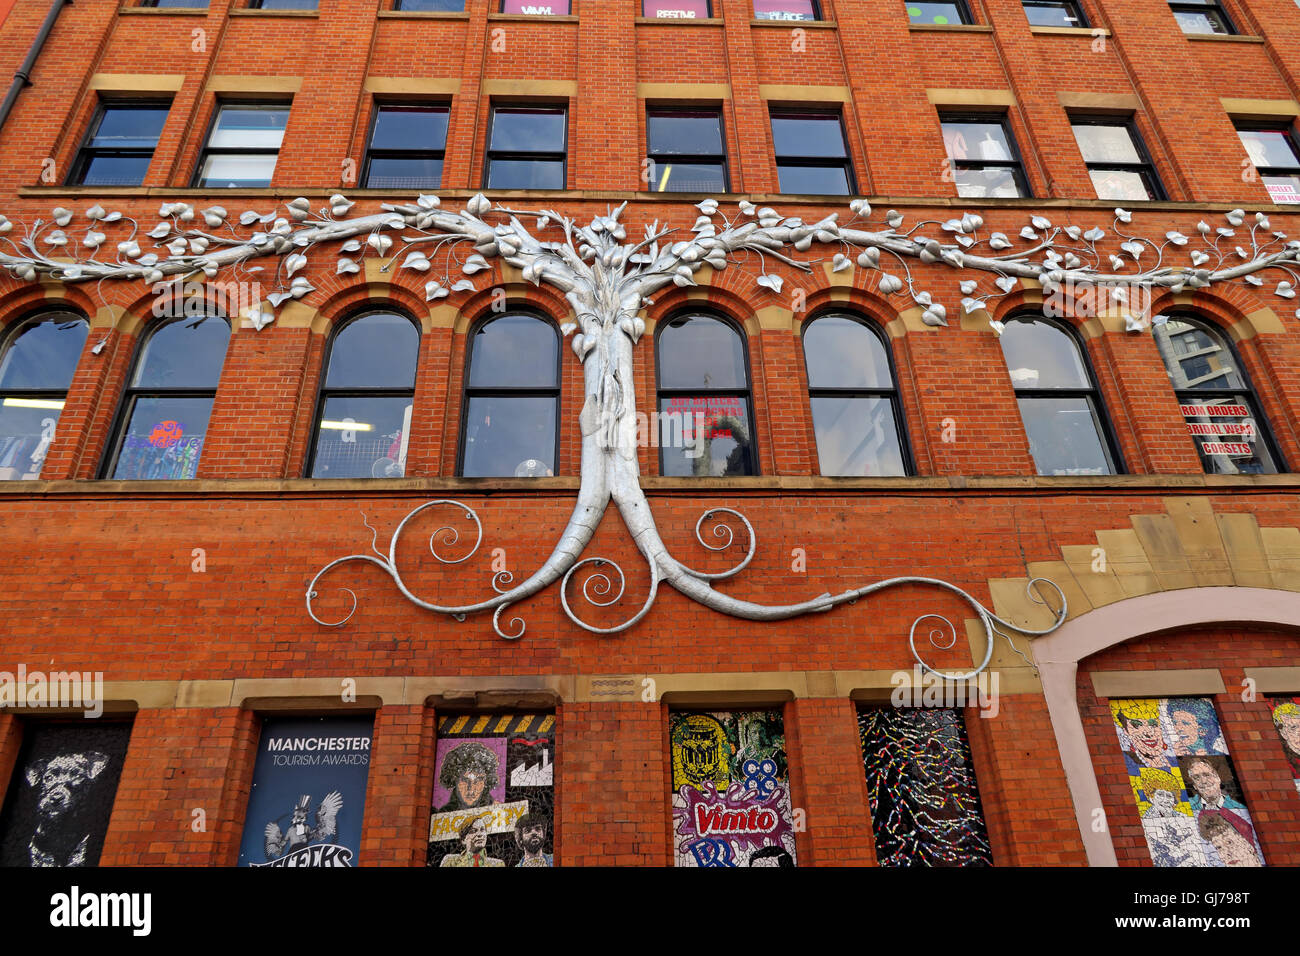 Afflecks Palace Manchester - Side of building artwork - Stock Image